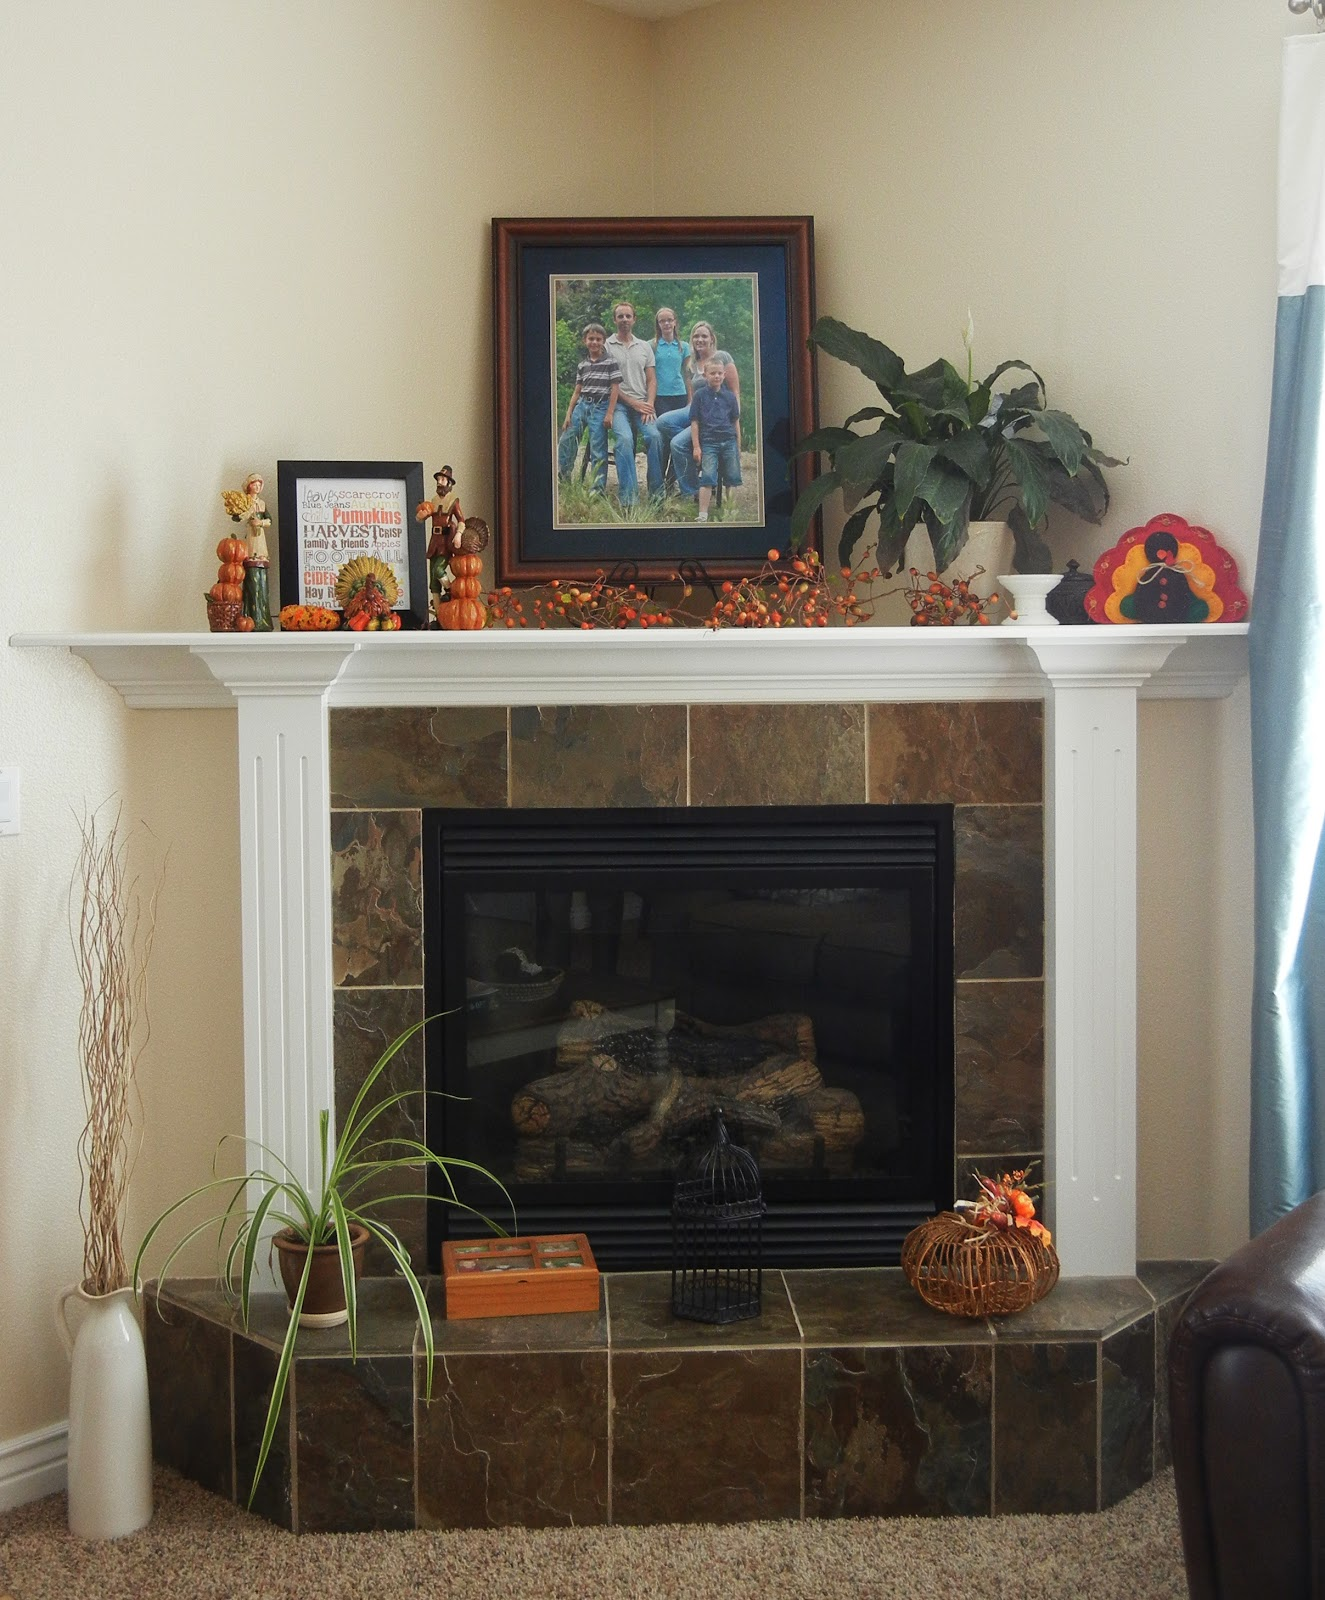 Vanessa's Fireplace, With Its Tile Base And Deep Corner Top Ledge, Is